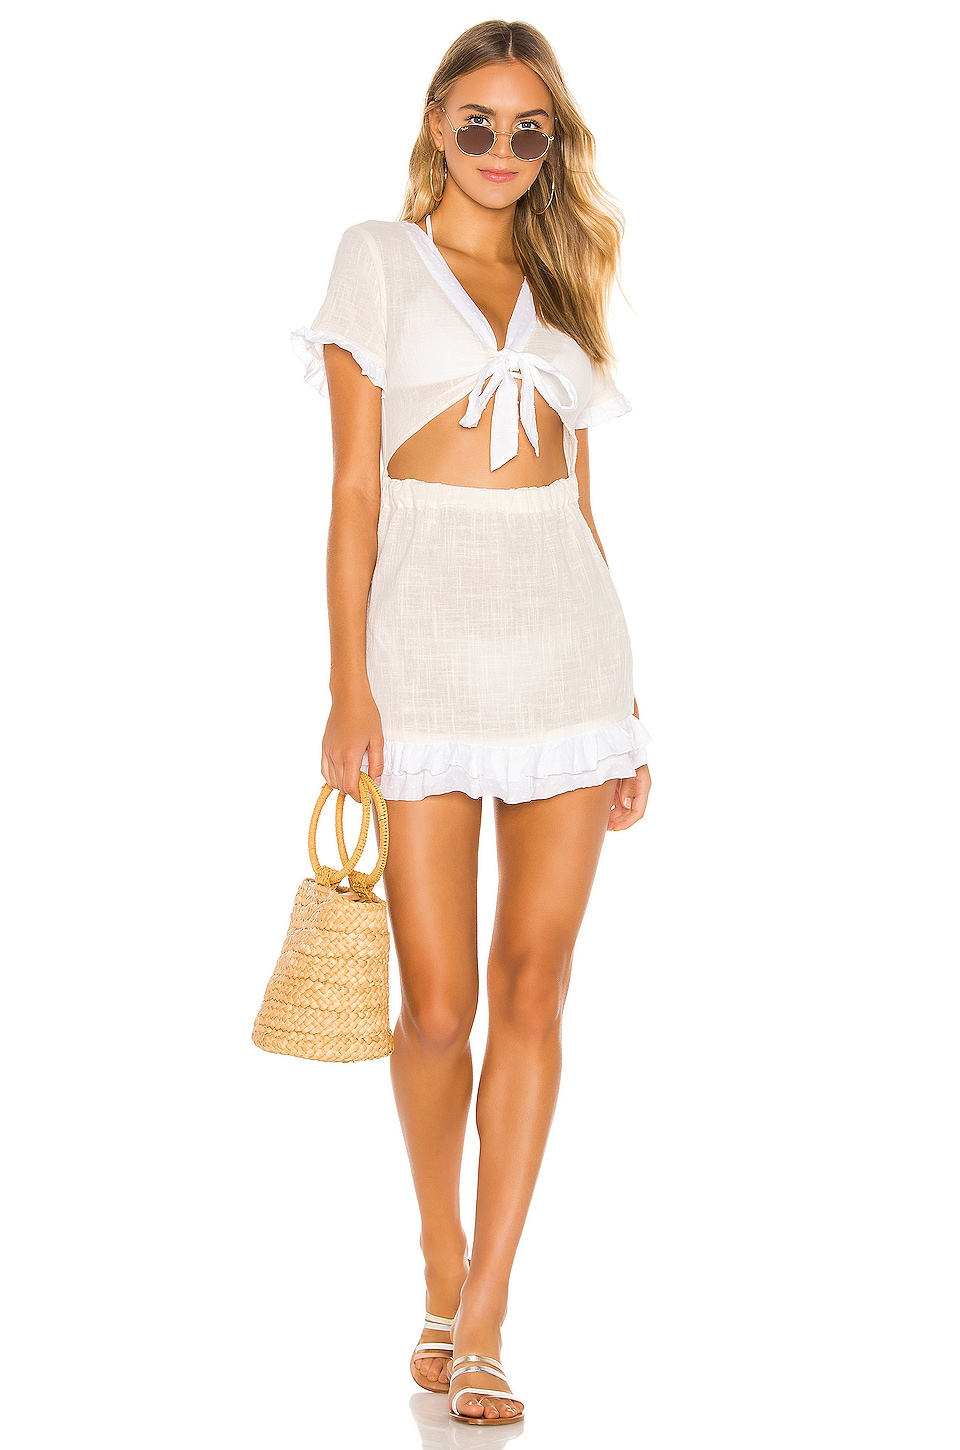 lovewave Small Town Girl Mini in Ivory